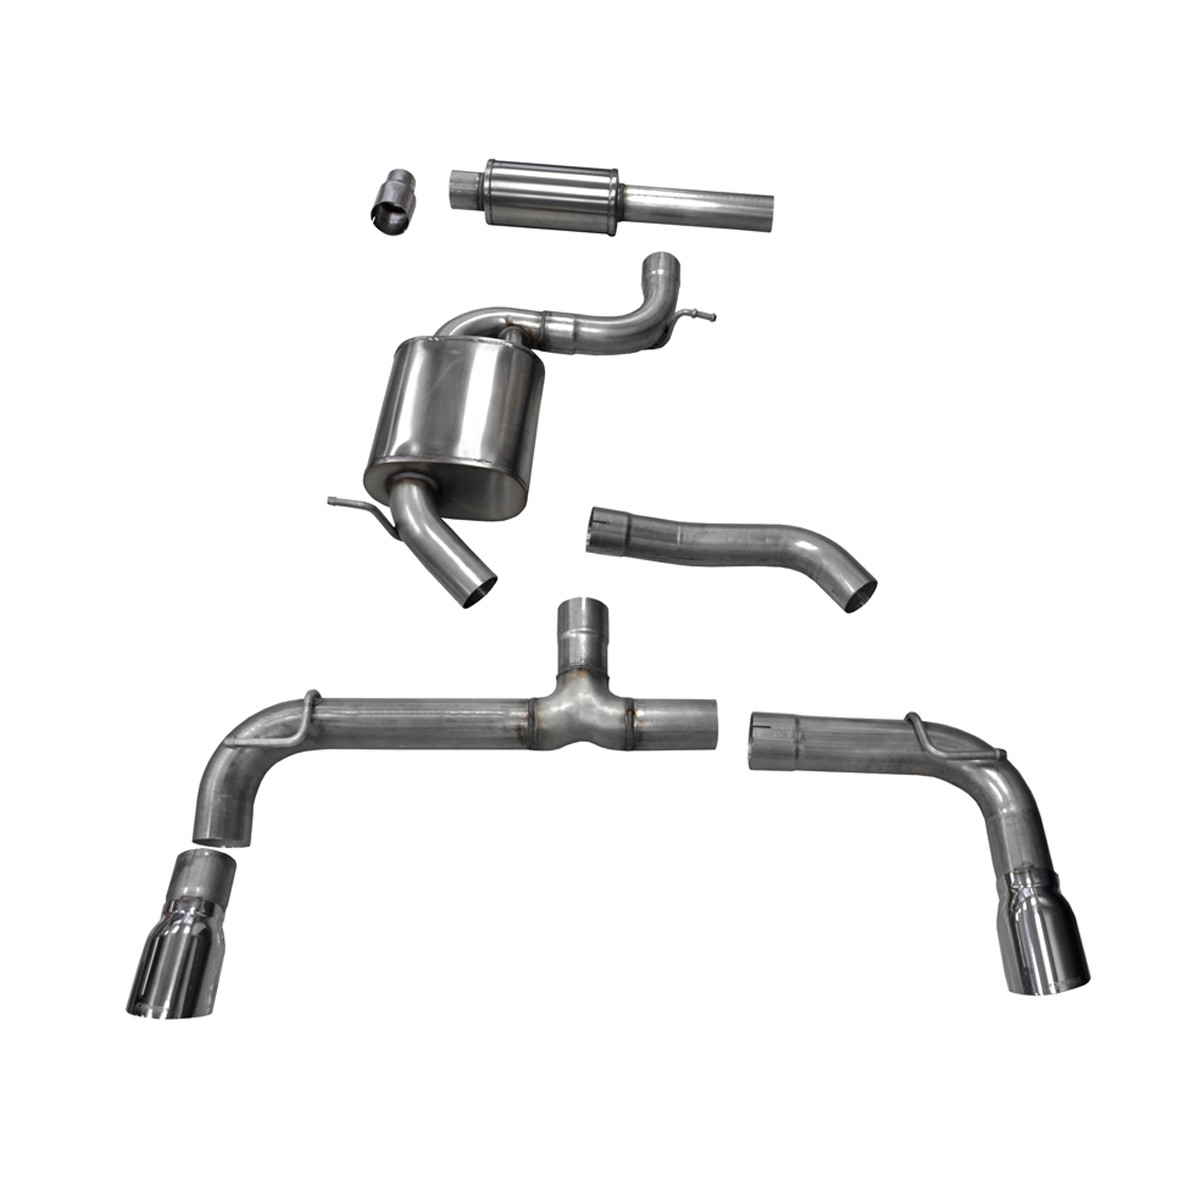 Corsa Performance MKVII Volkswagen Golf/GTI 2.0 TSI Cat-Back Exhaust System - Polished Tips